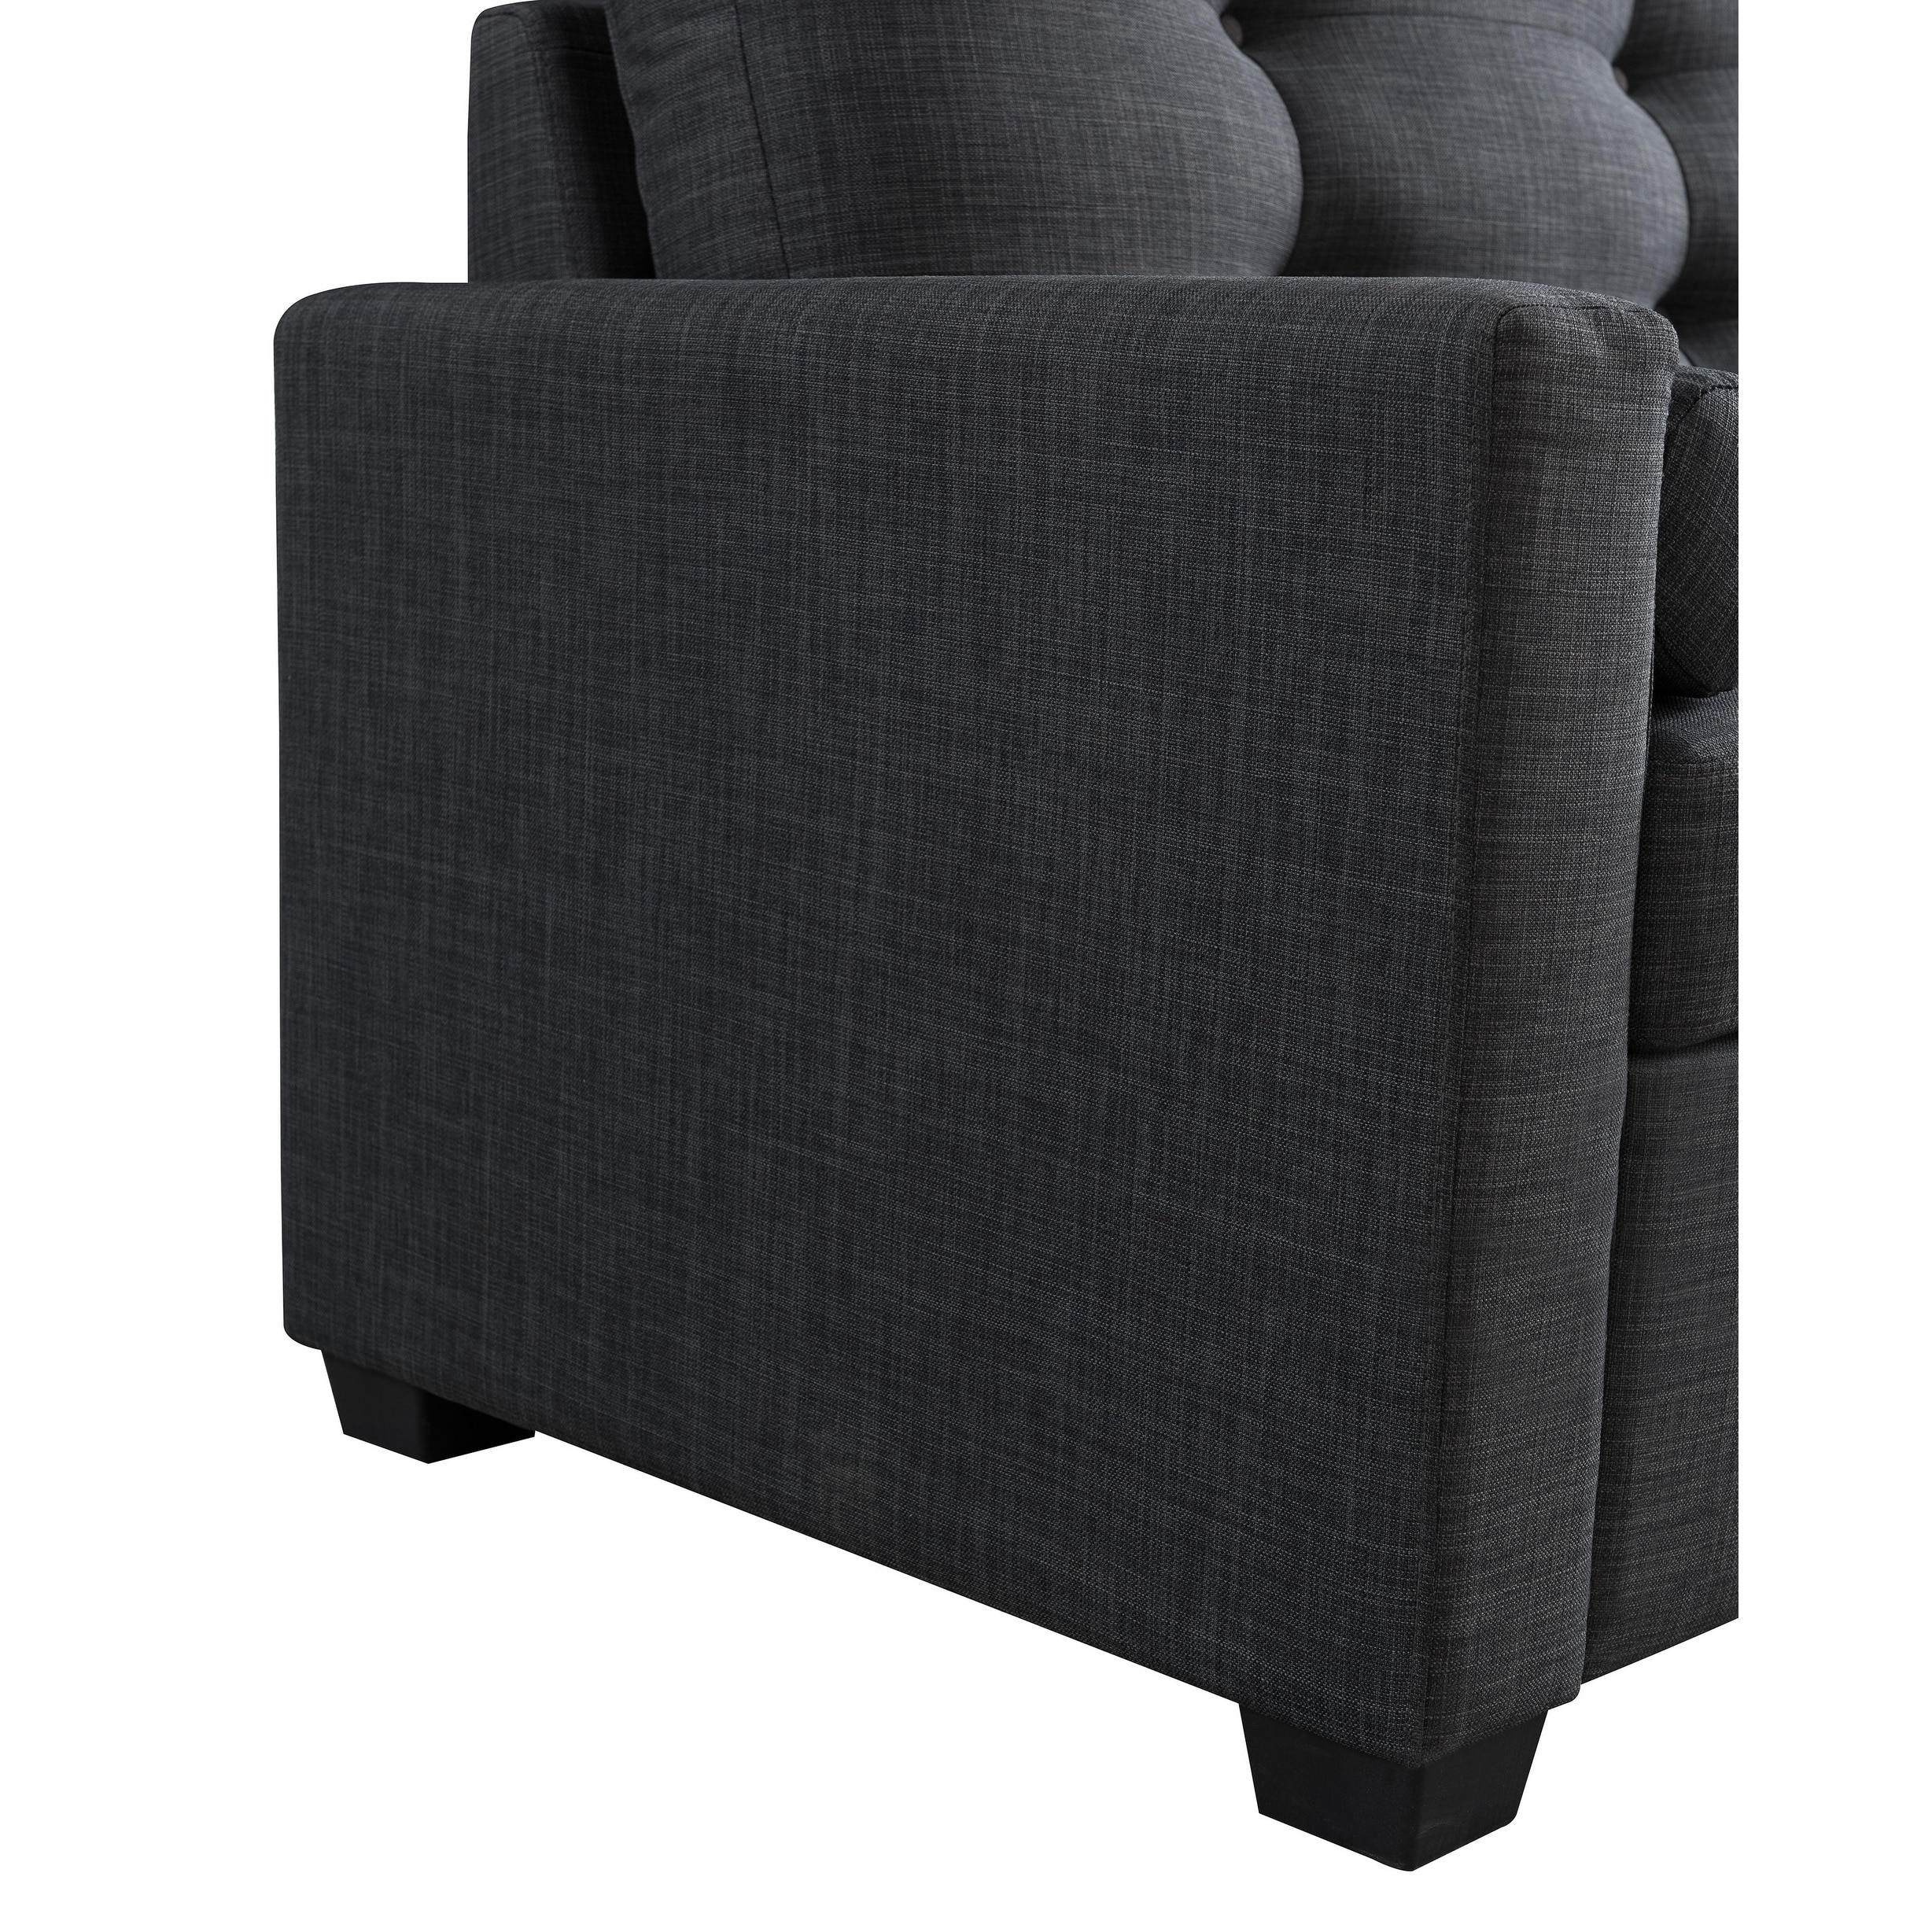 Shop Avesta Gray Tufted Twin Size Convertible Sleeper Chair - Free Shipping Today - Overstock.com - 19851968  sc 1 st  Overstock.com : twin chair - Cheerinfomania.Com